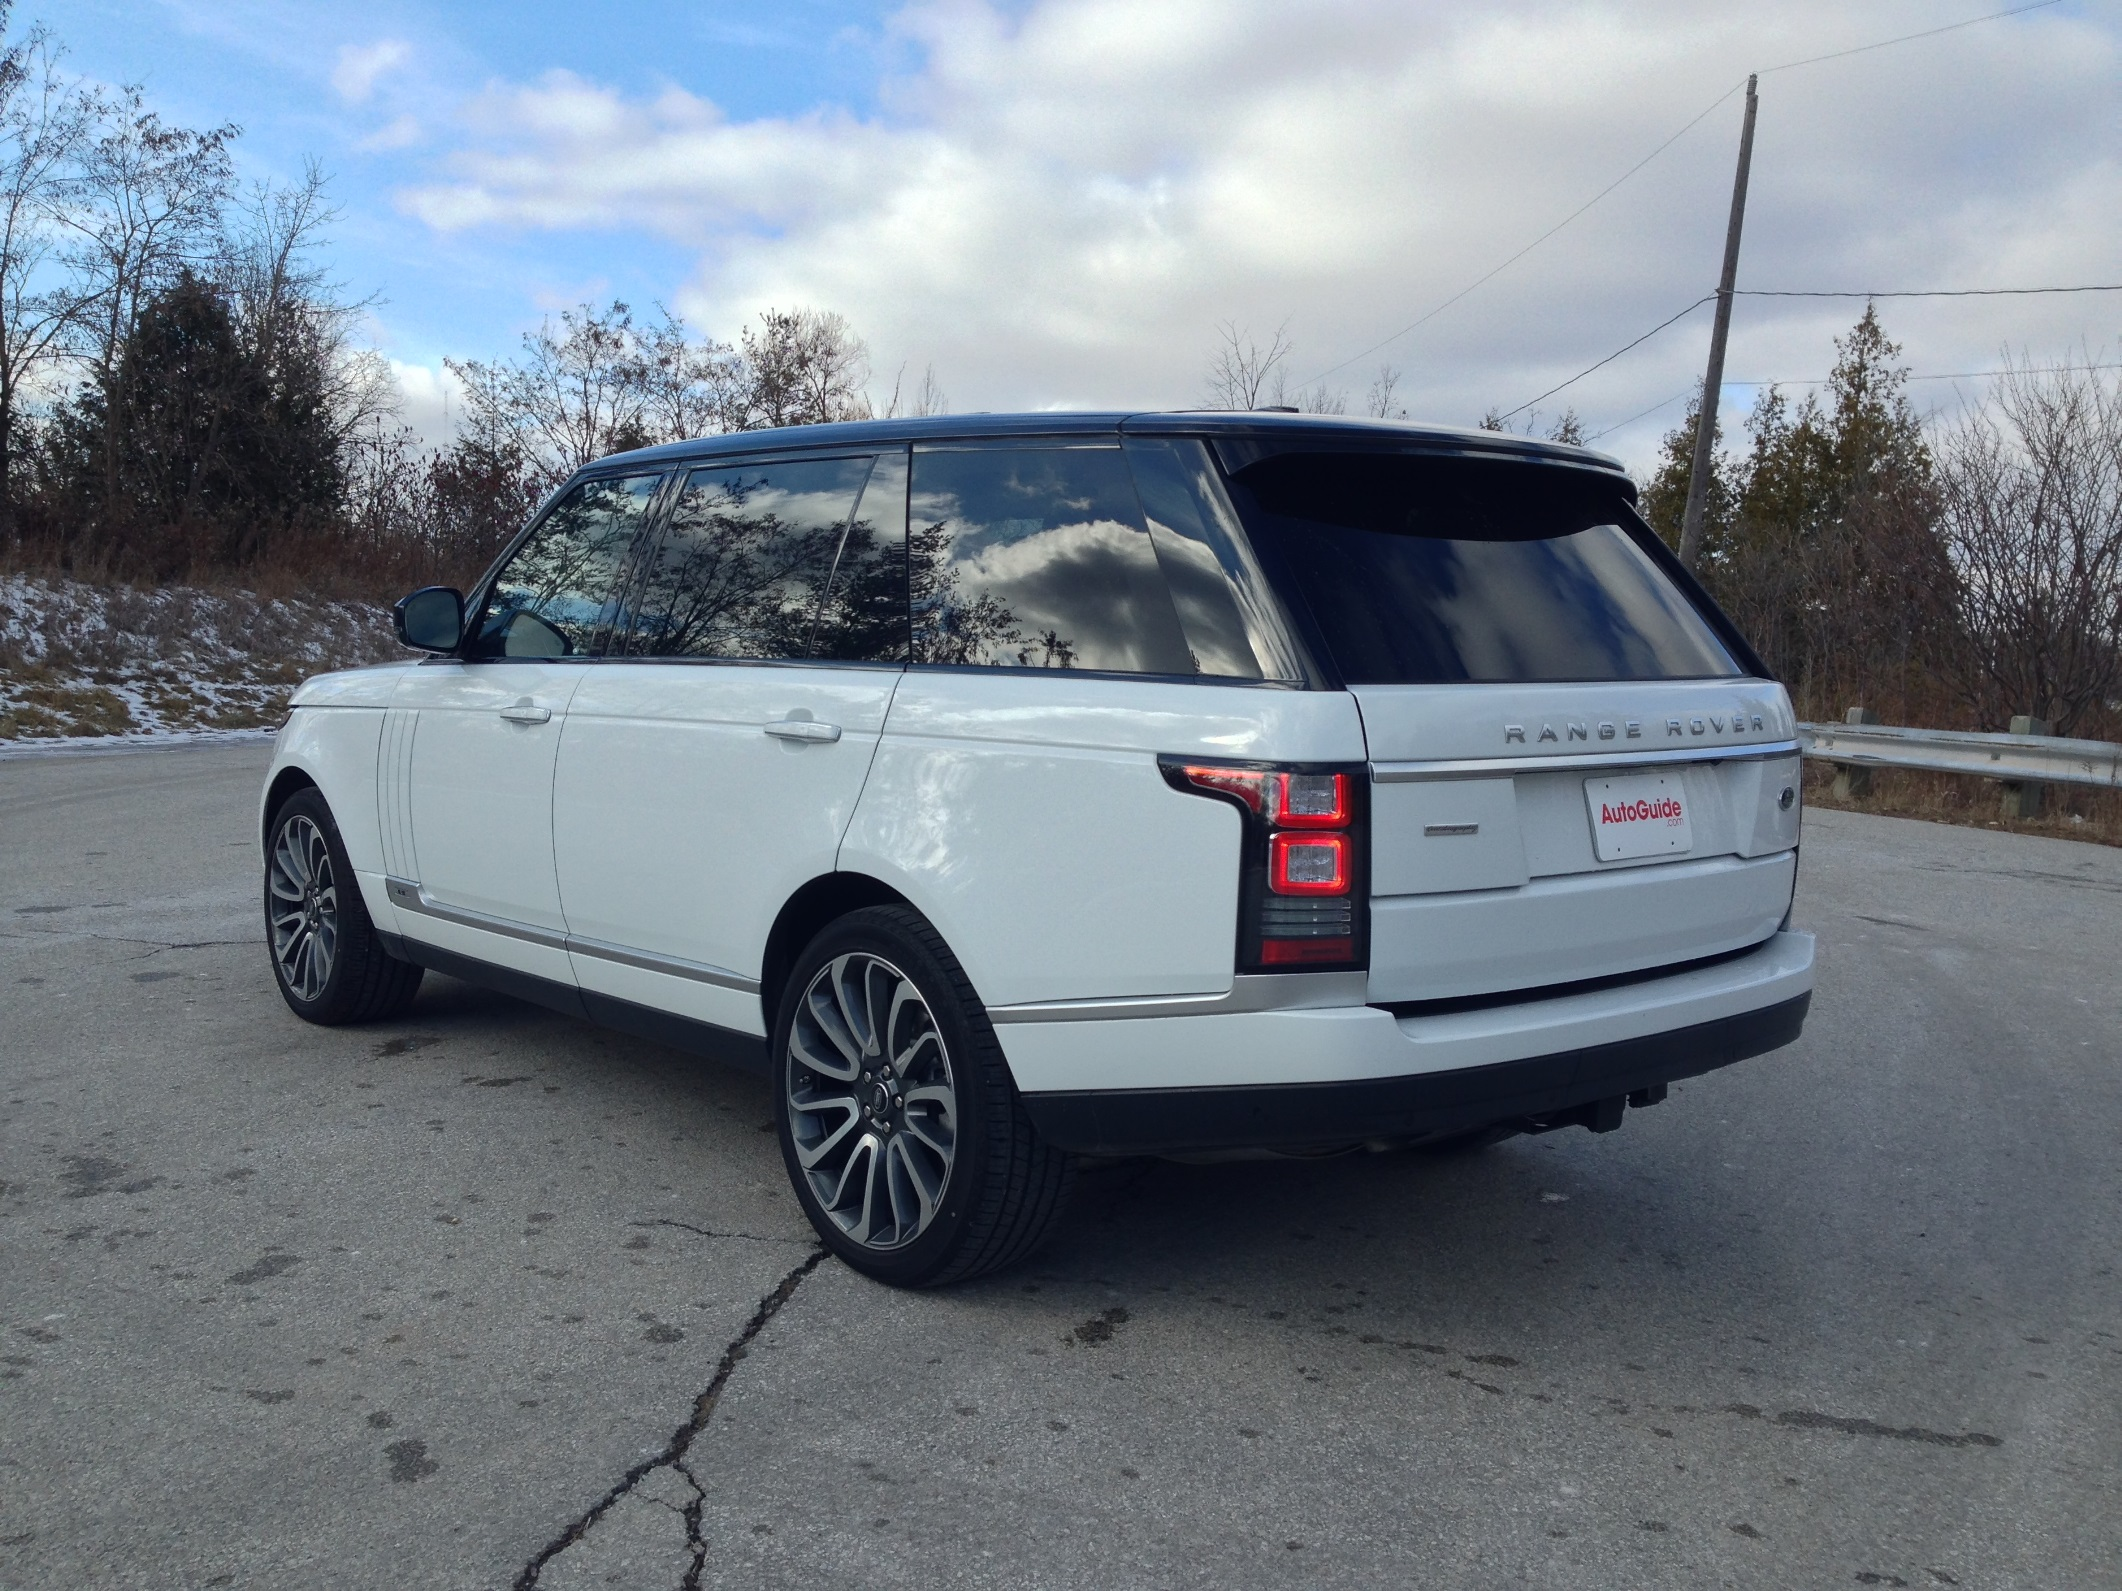 2015 Range Rover Long Wheelbase Autobiography Review - AutoGuide.com